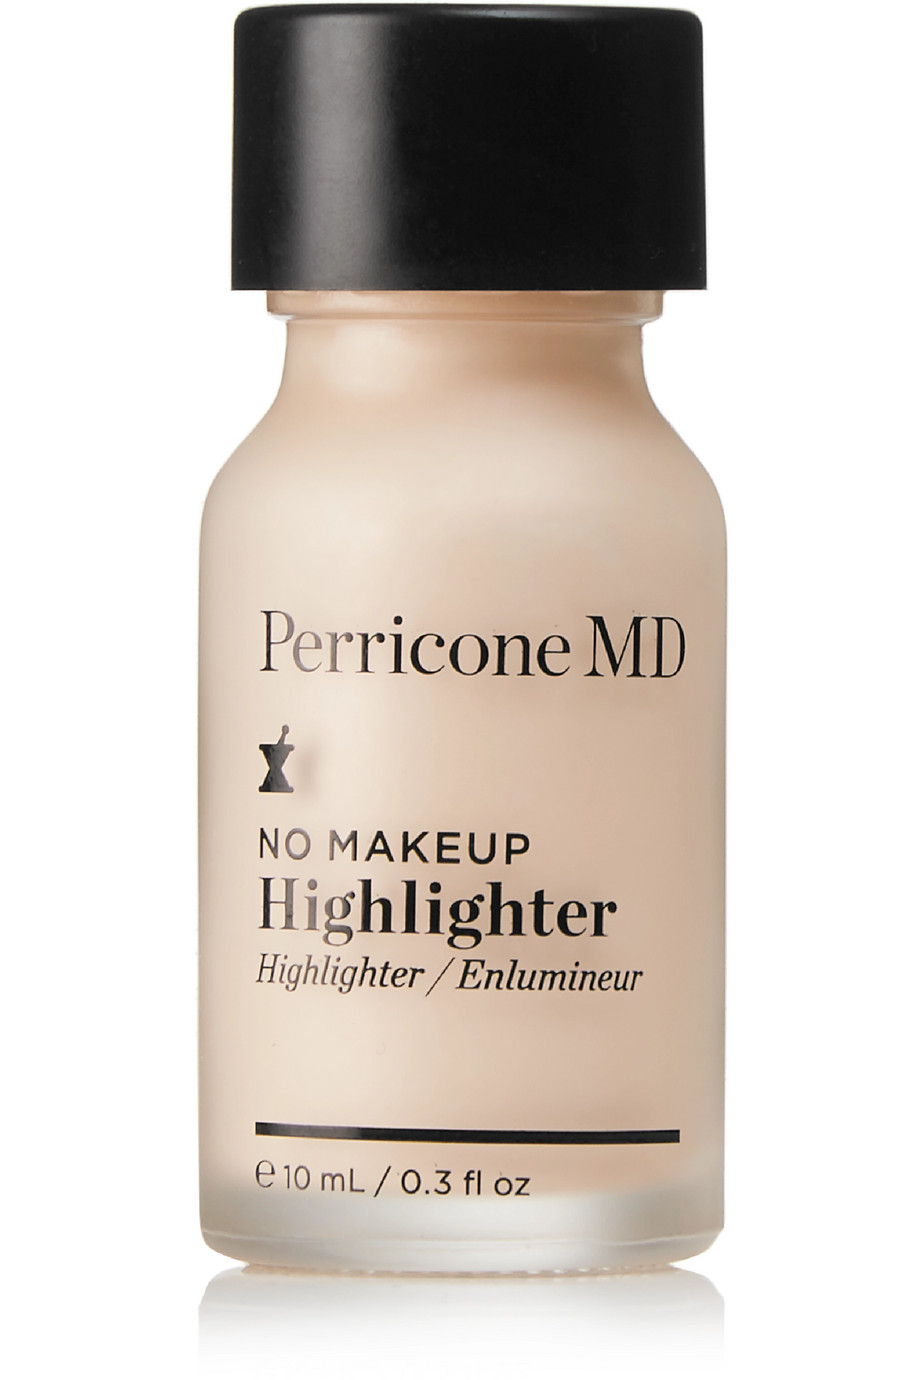 Perricone MD No Makeup Highlighter, 10ml